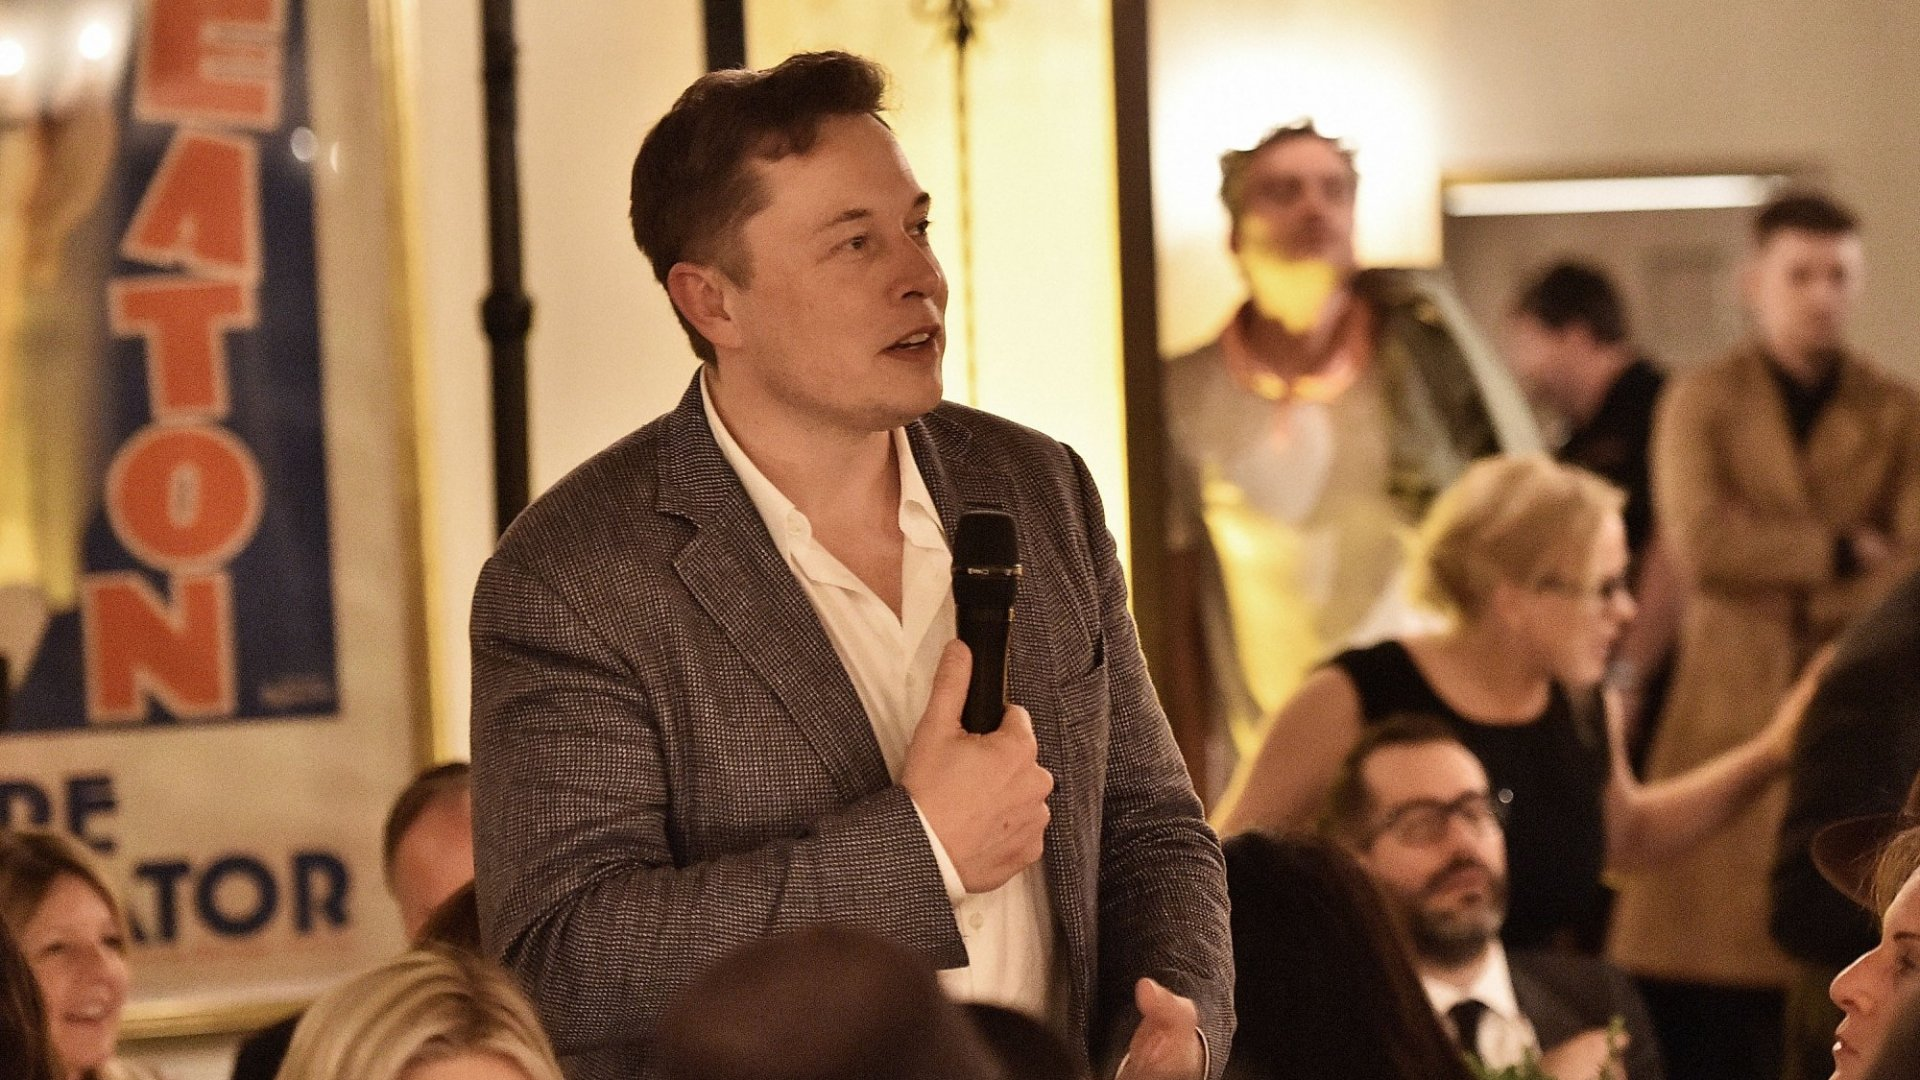 1 Lesson Every Entrepreneur Can Learn From Elon Musk On Customer Experience